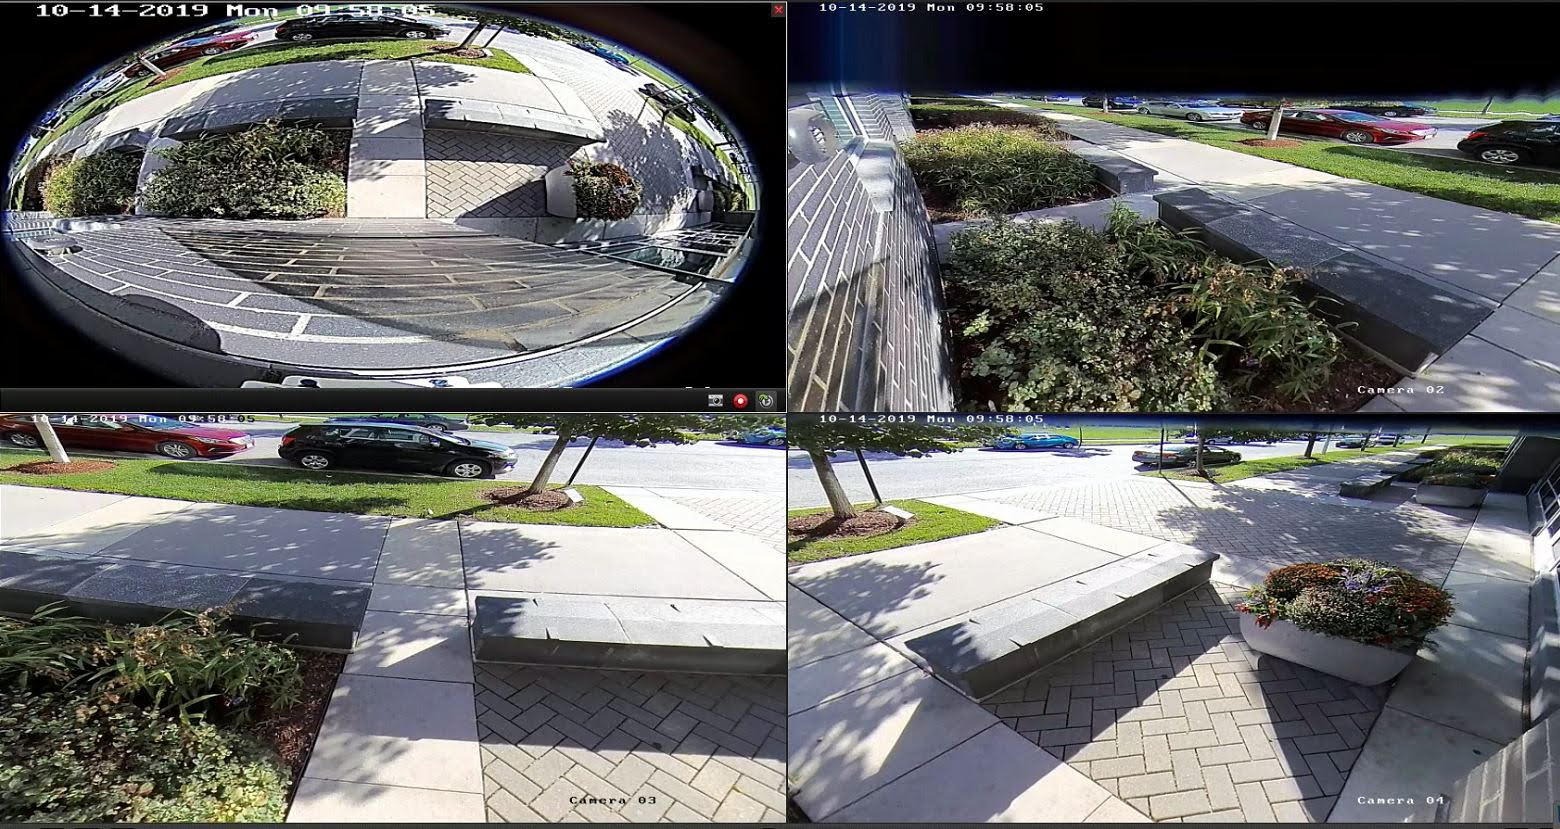 Can A Security Company Provide Public Footage?